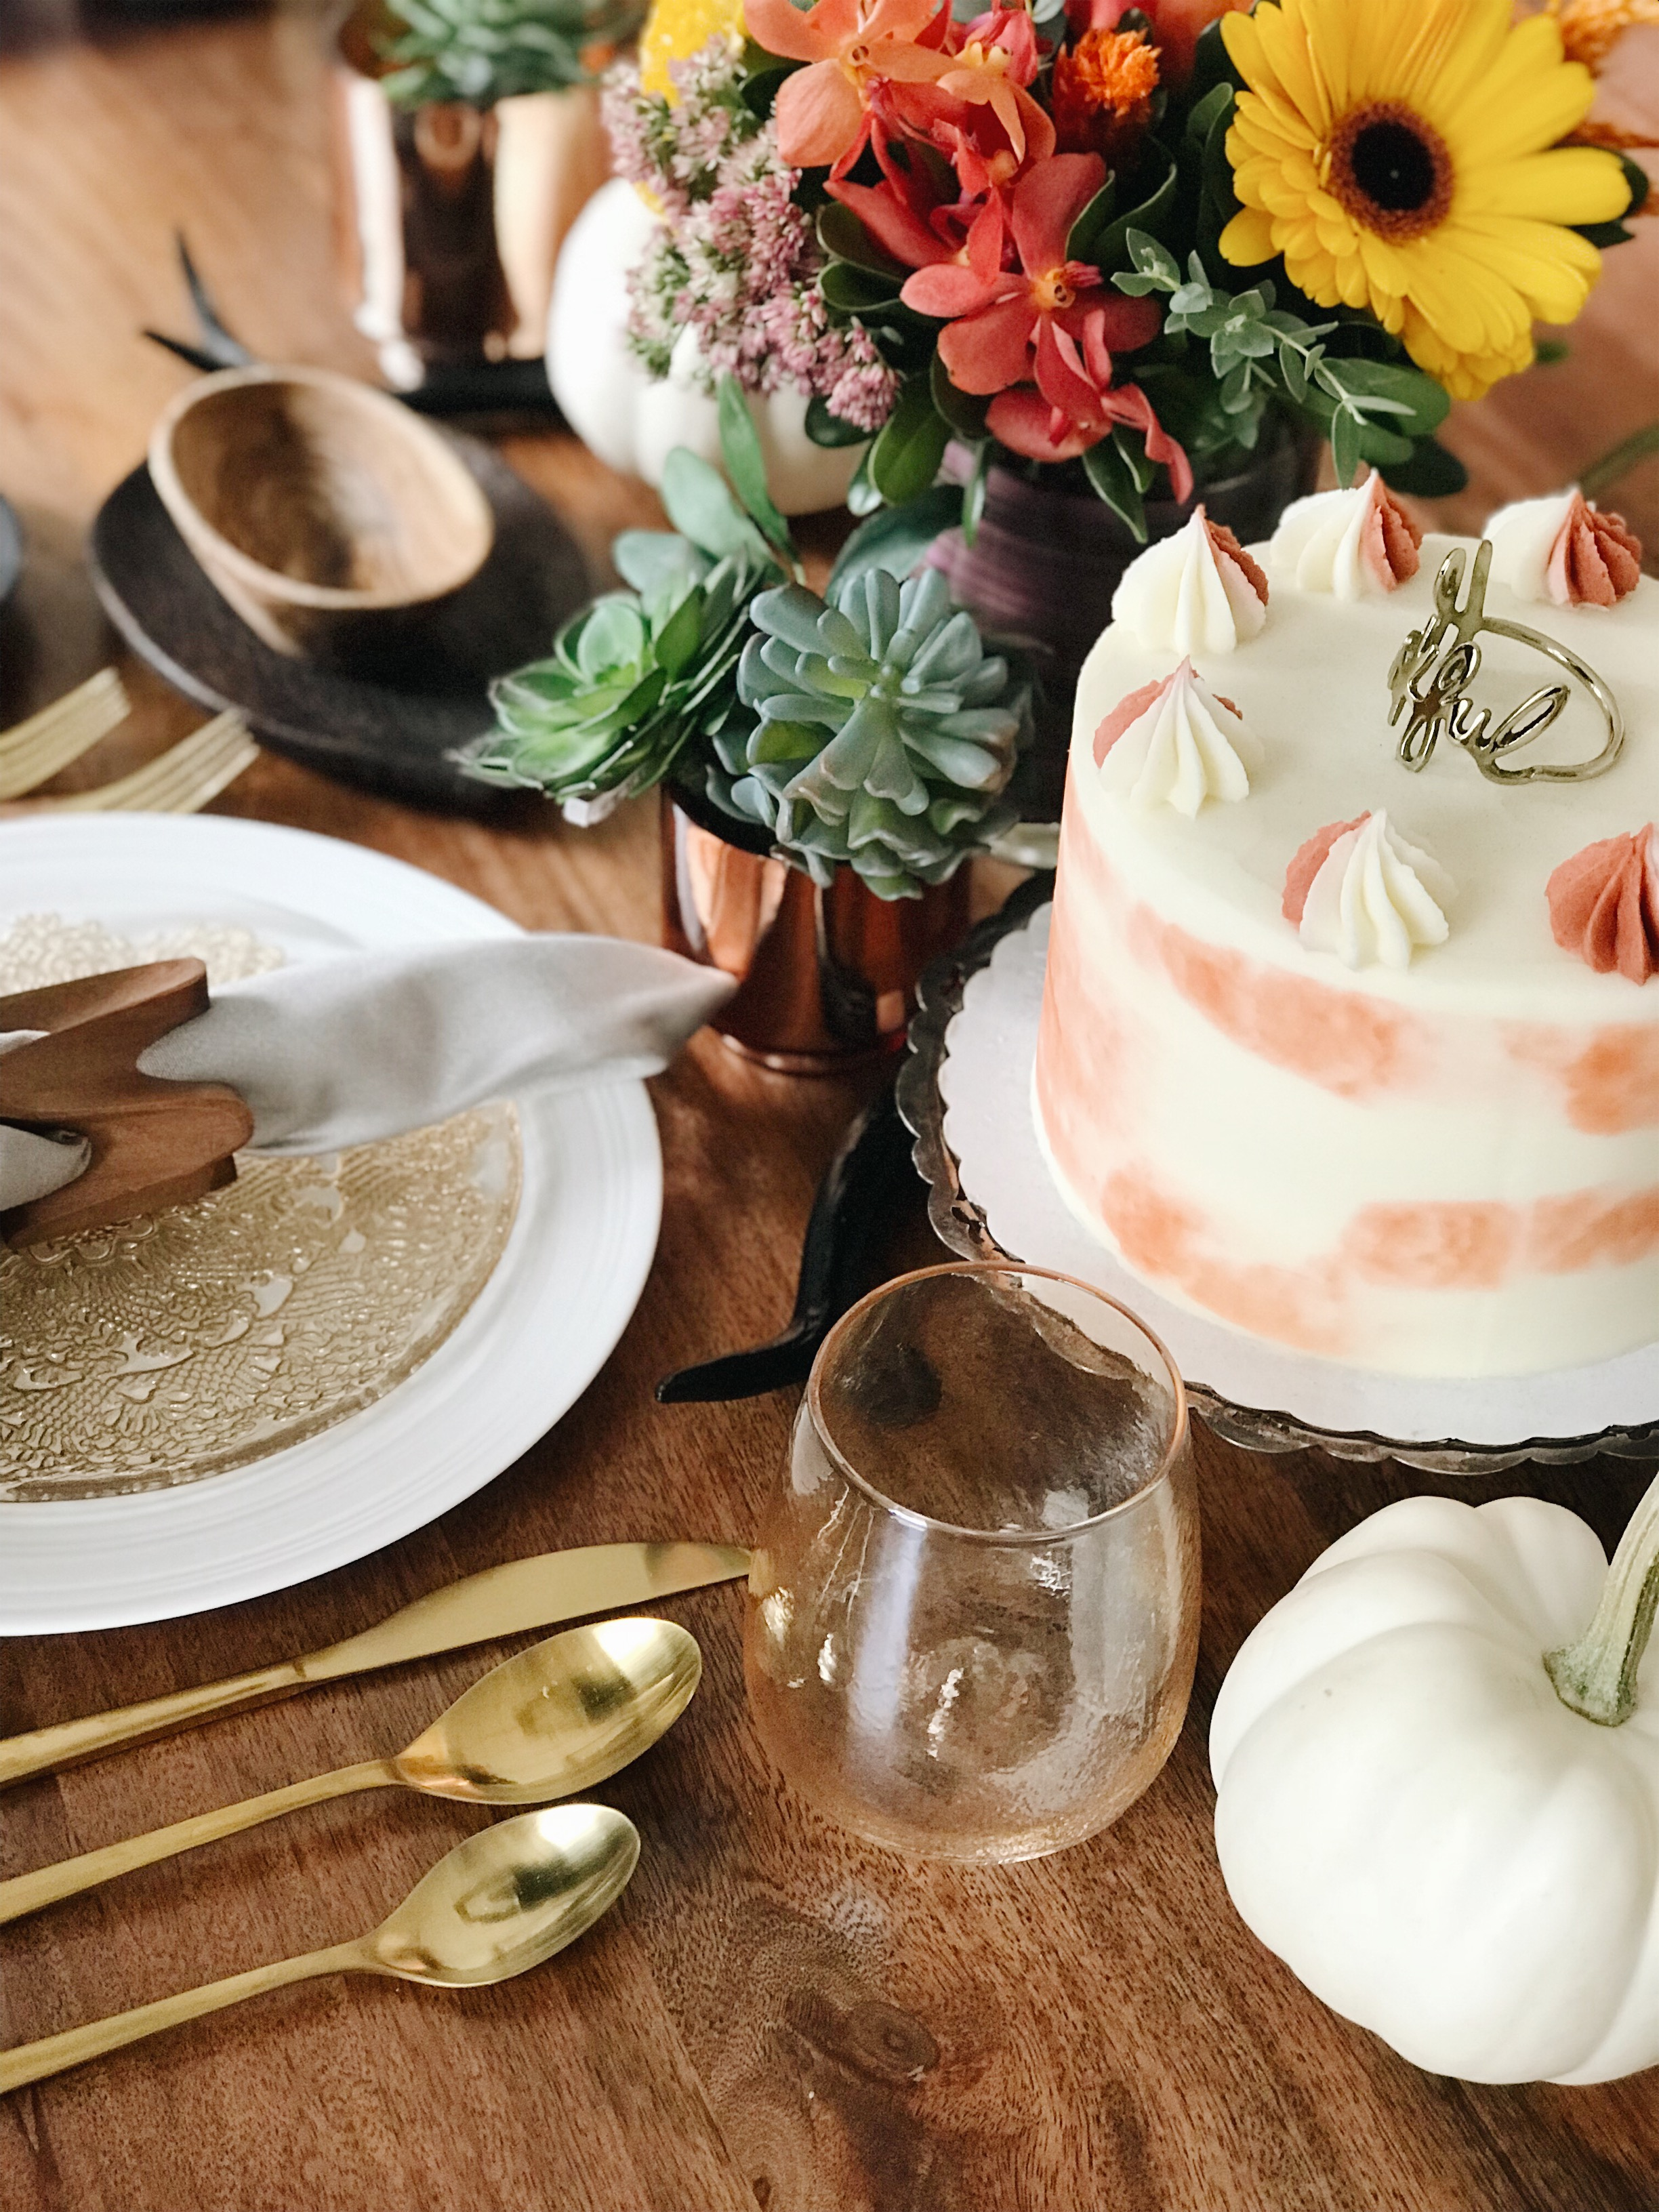 Thanksgiving Colourful Table Setting Ideas, Four Basics Three Options, Holiday Decor, Calgary Interior Designer, Nyla Free Designs